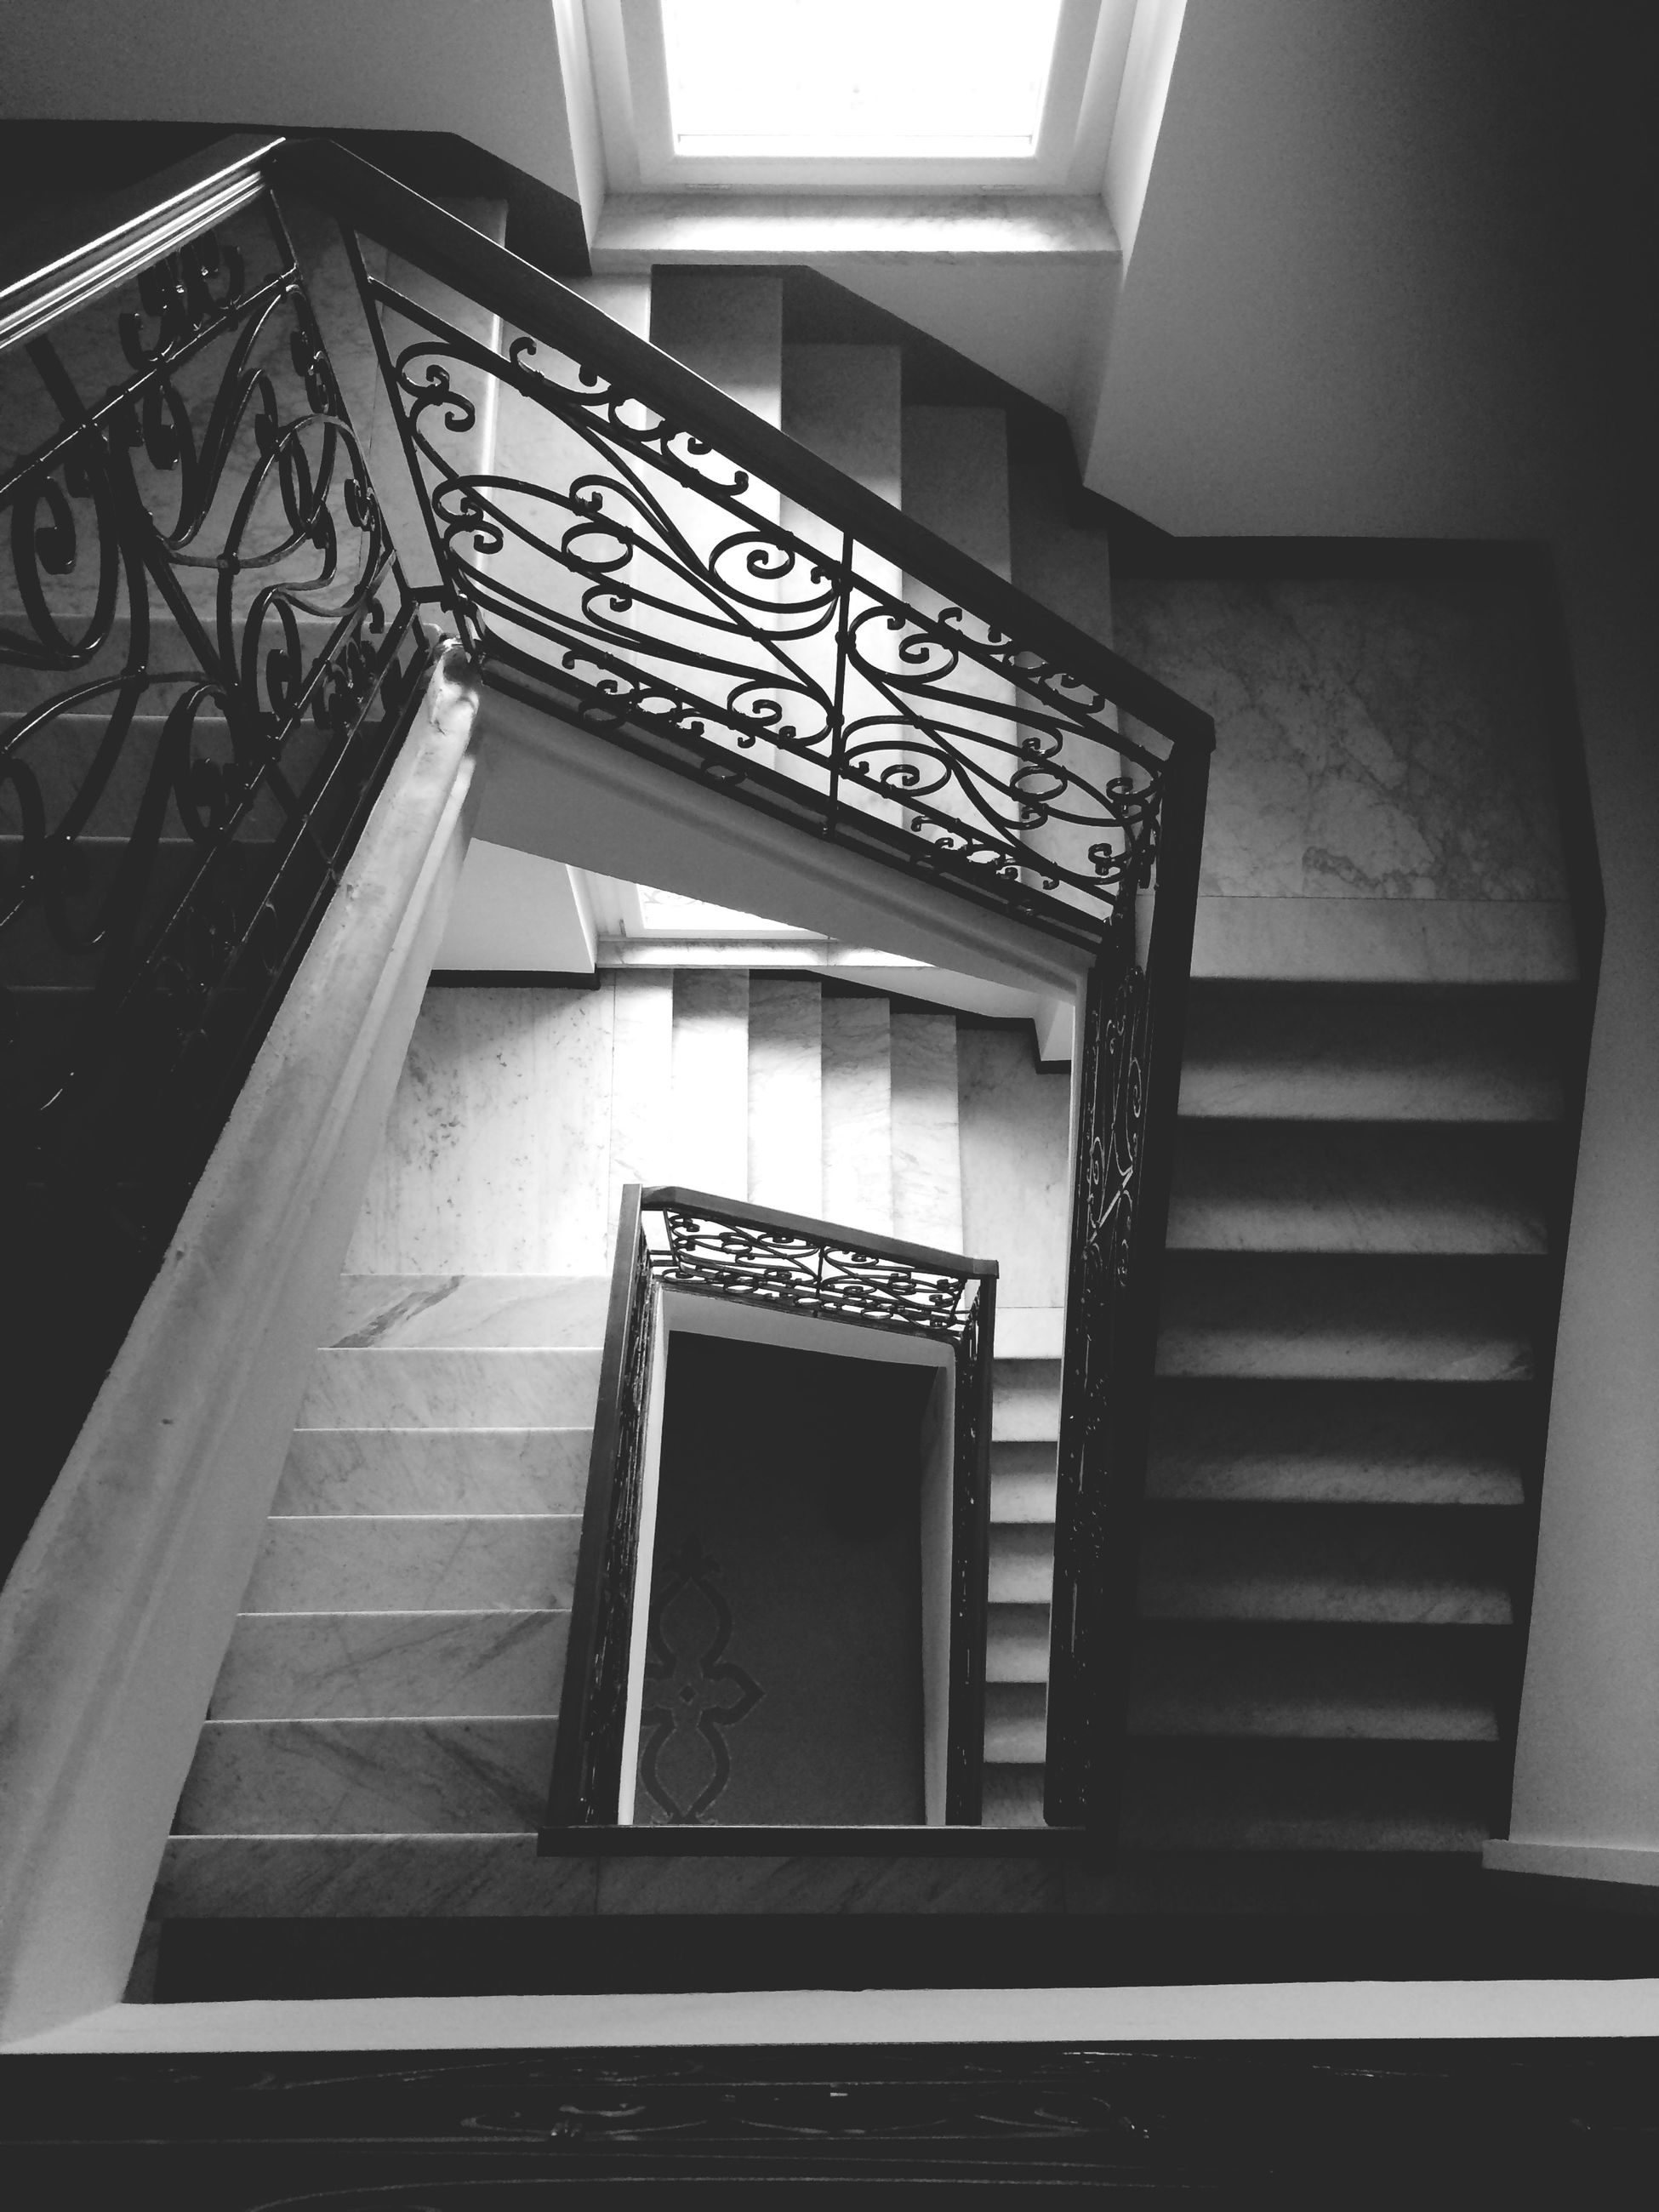 architecture, indoors, built structure, steps, staircase, steps and staircases, low angle view, railing, design, pattern, building, building exterior, no people, wall - building feature, stairs, window, architectural feature, ceiling, day, door